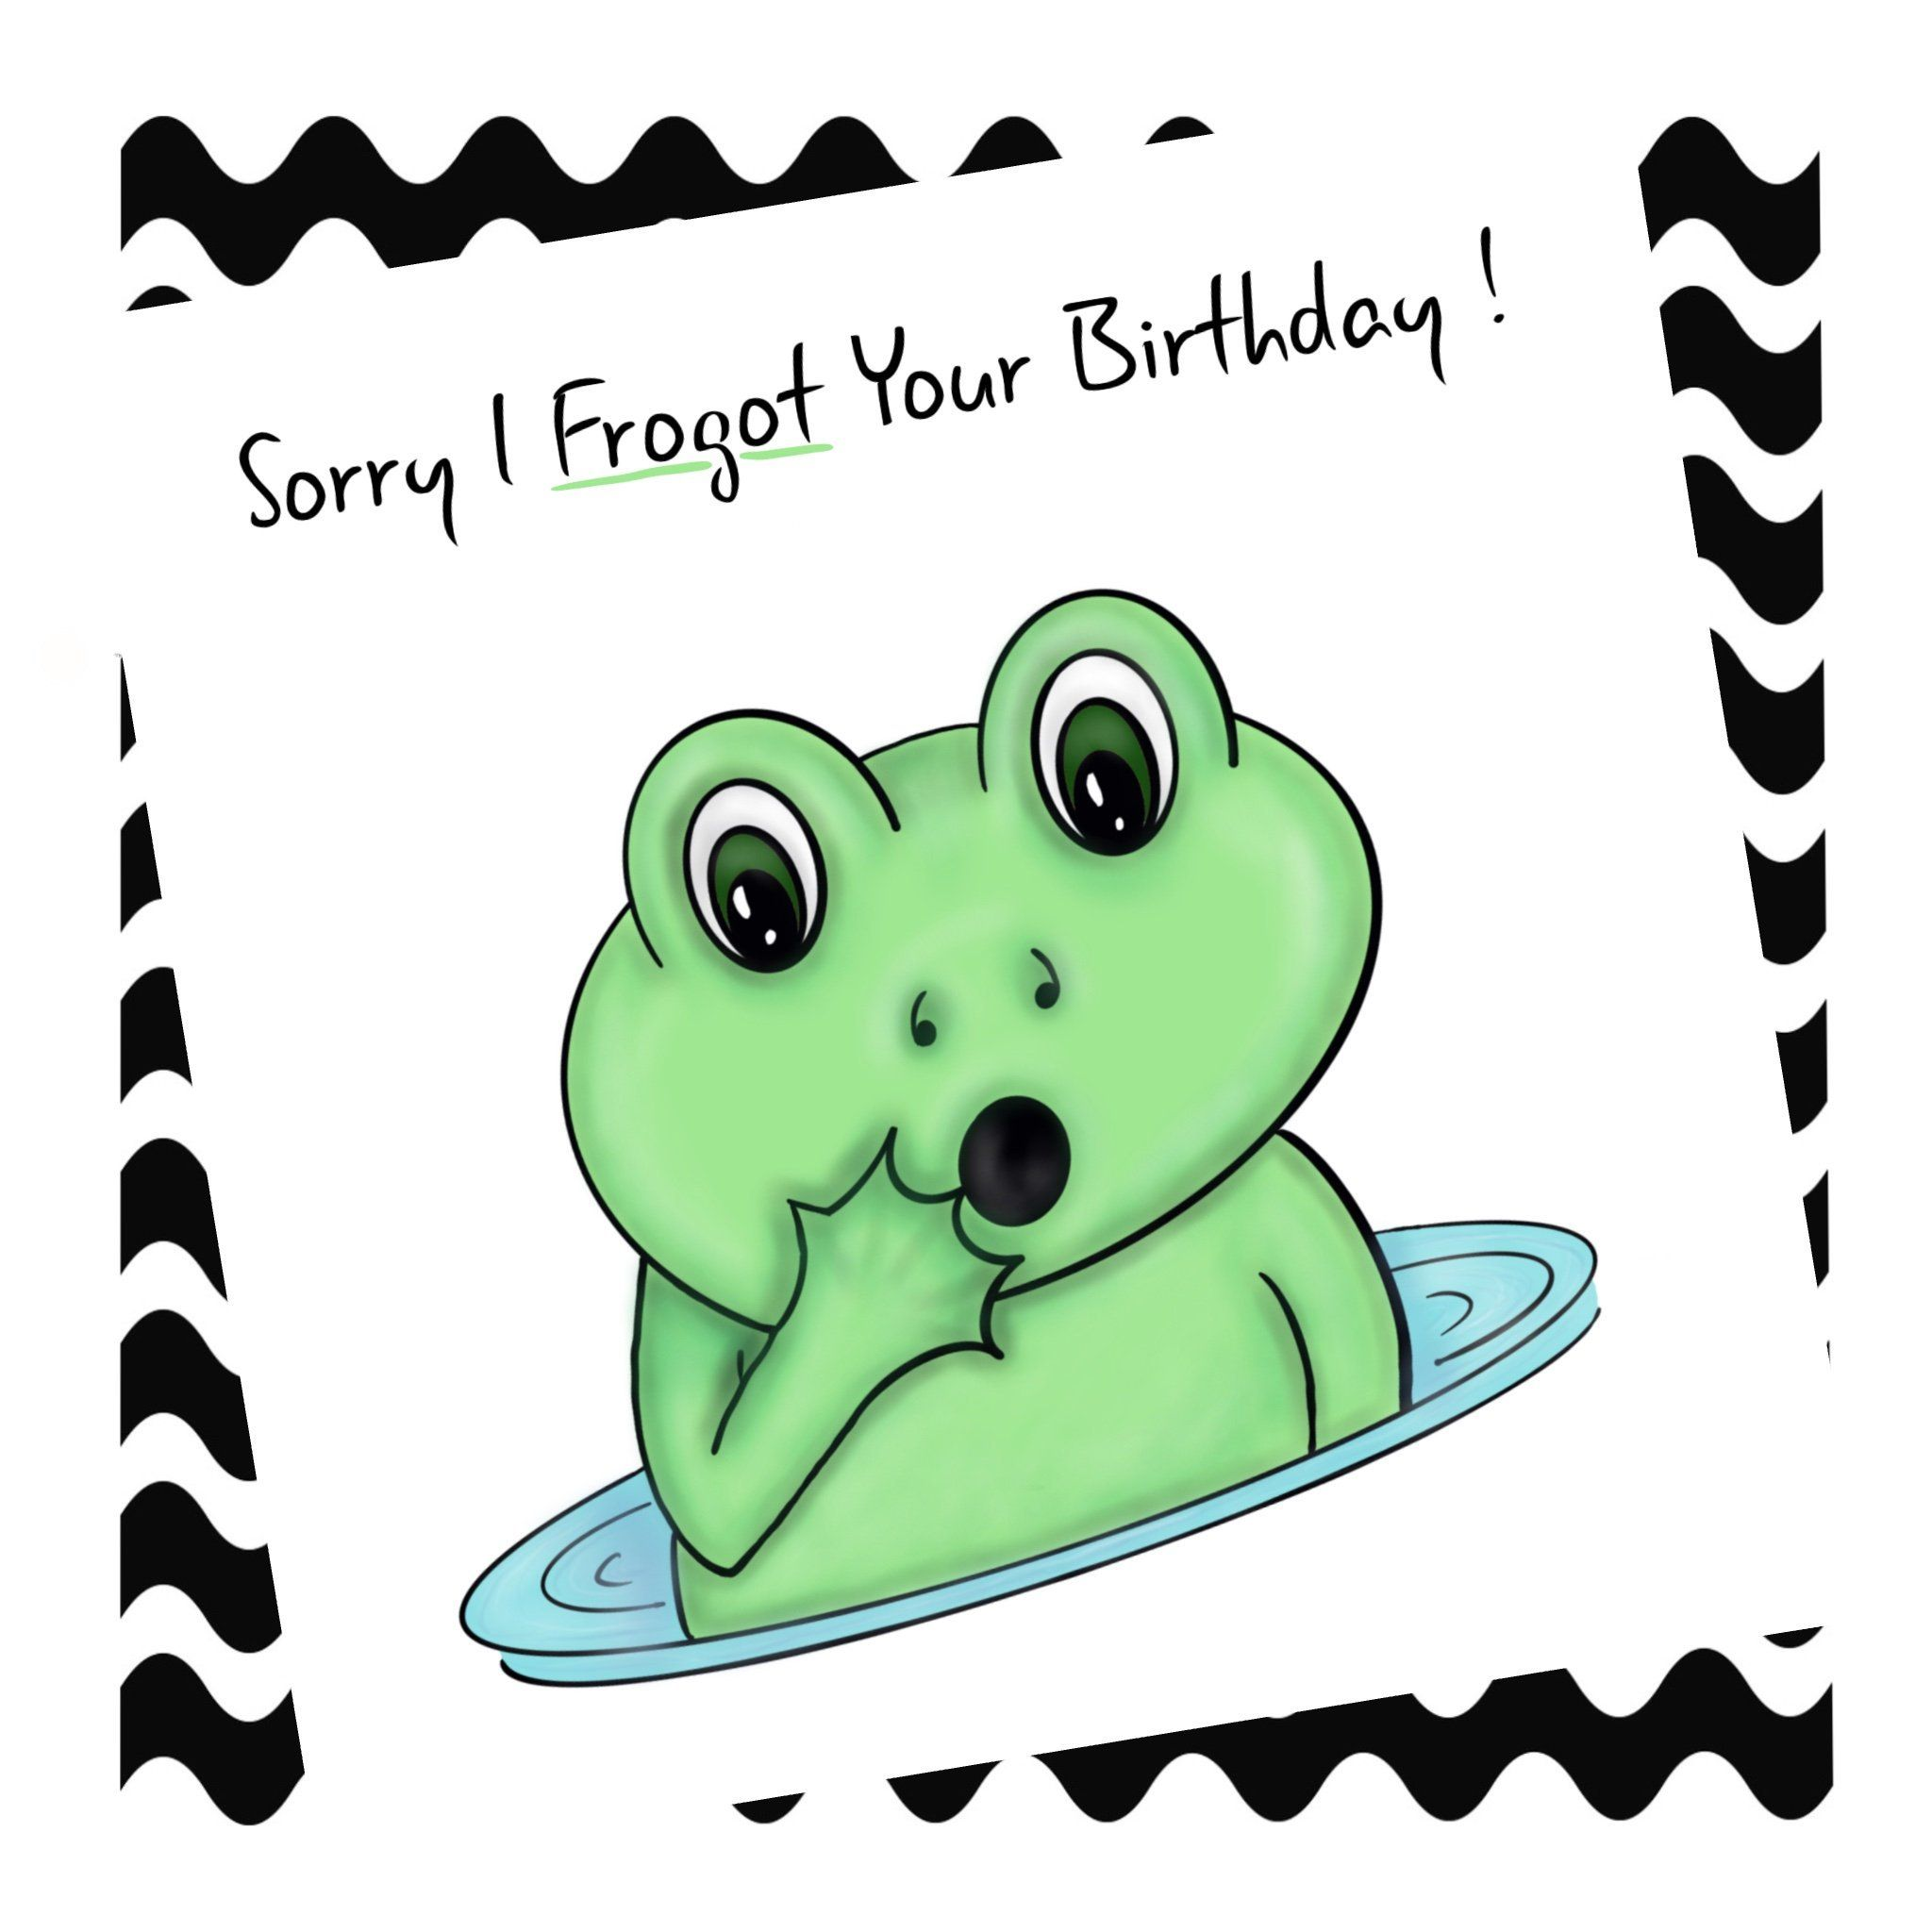 Sorry I Forgot Your Birthday By Cosmicpanda93 On Etsy Greeting Card Collection Cute Birthday Ideas It S Your Birthday